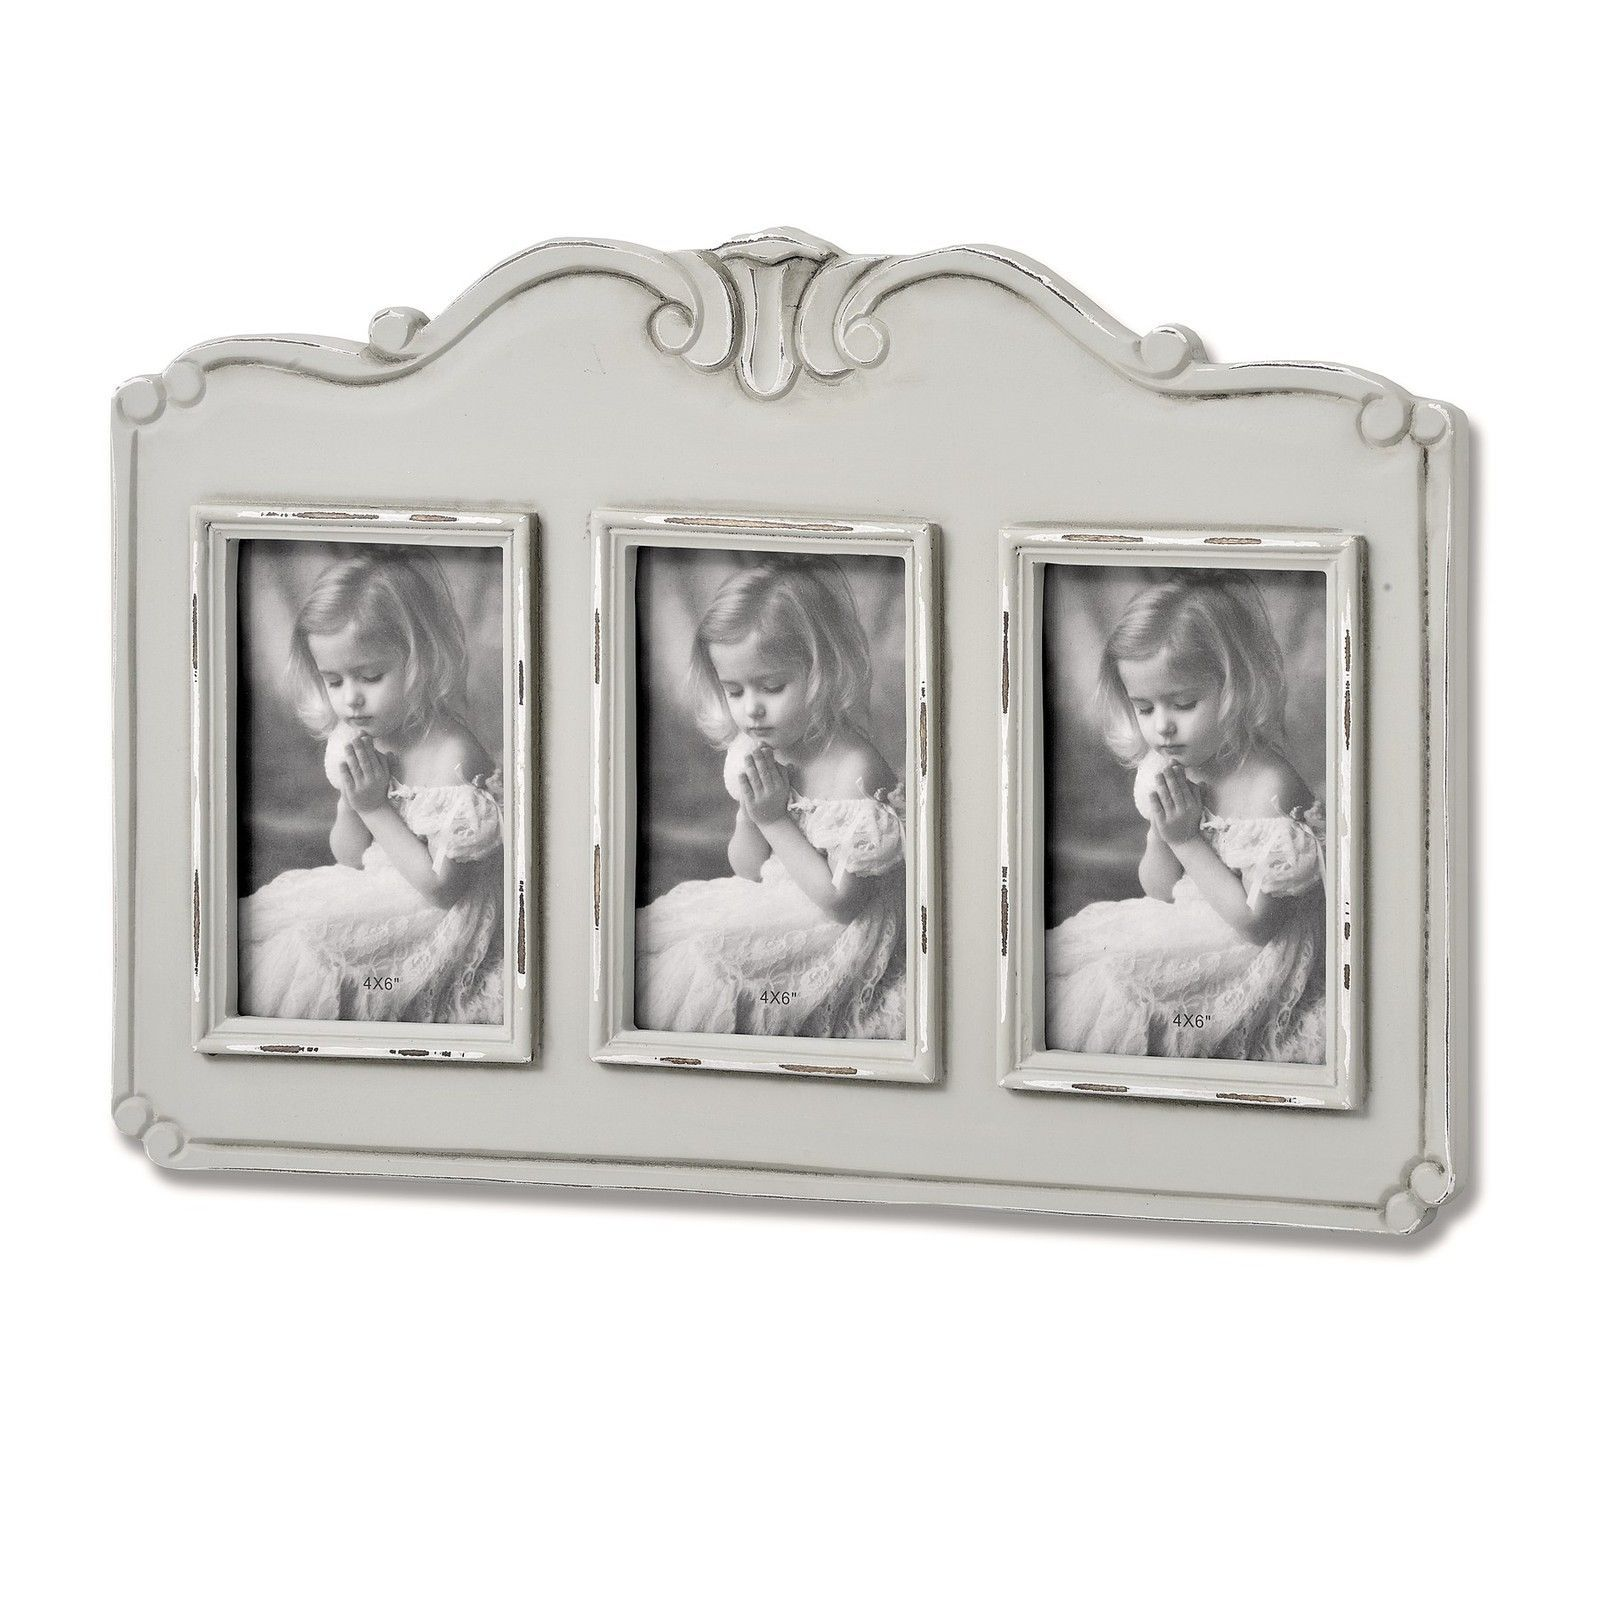 Parisienne Grey Shabby Chic 3 Picture Wooden Wall Photo Frame